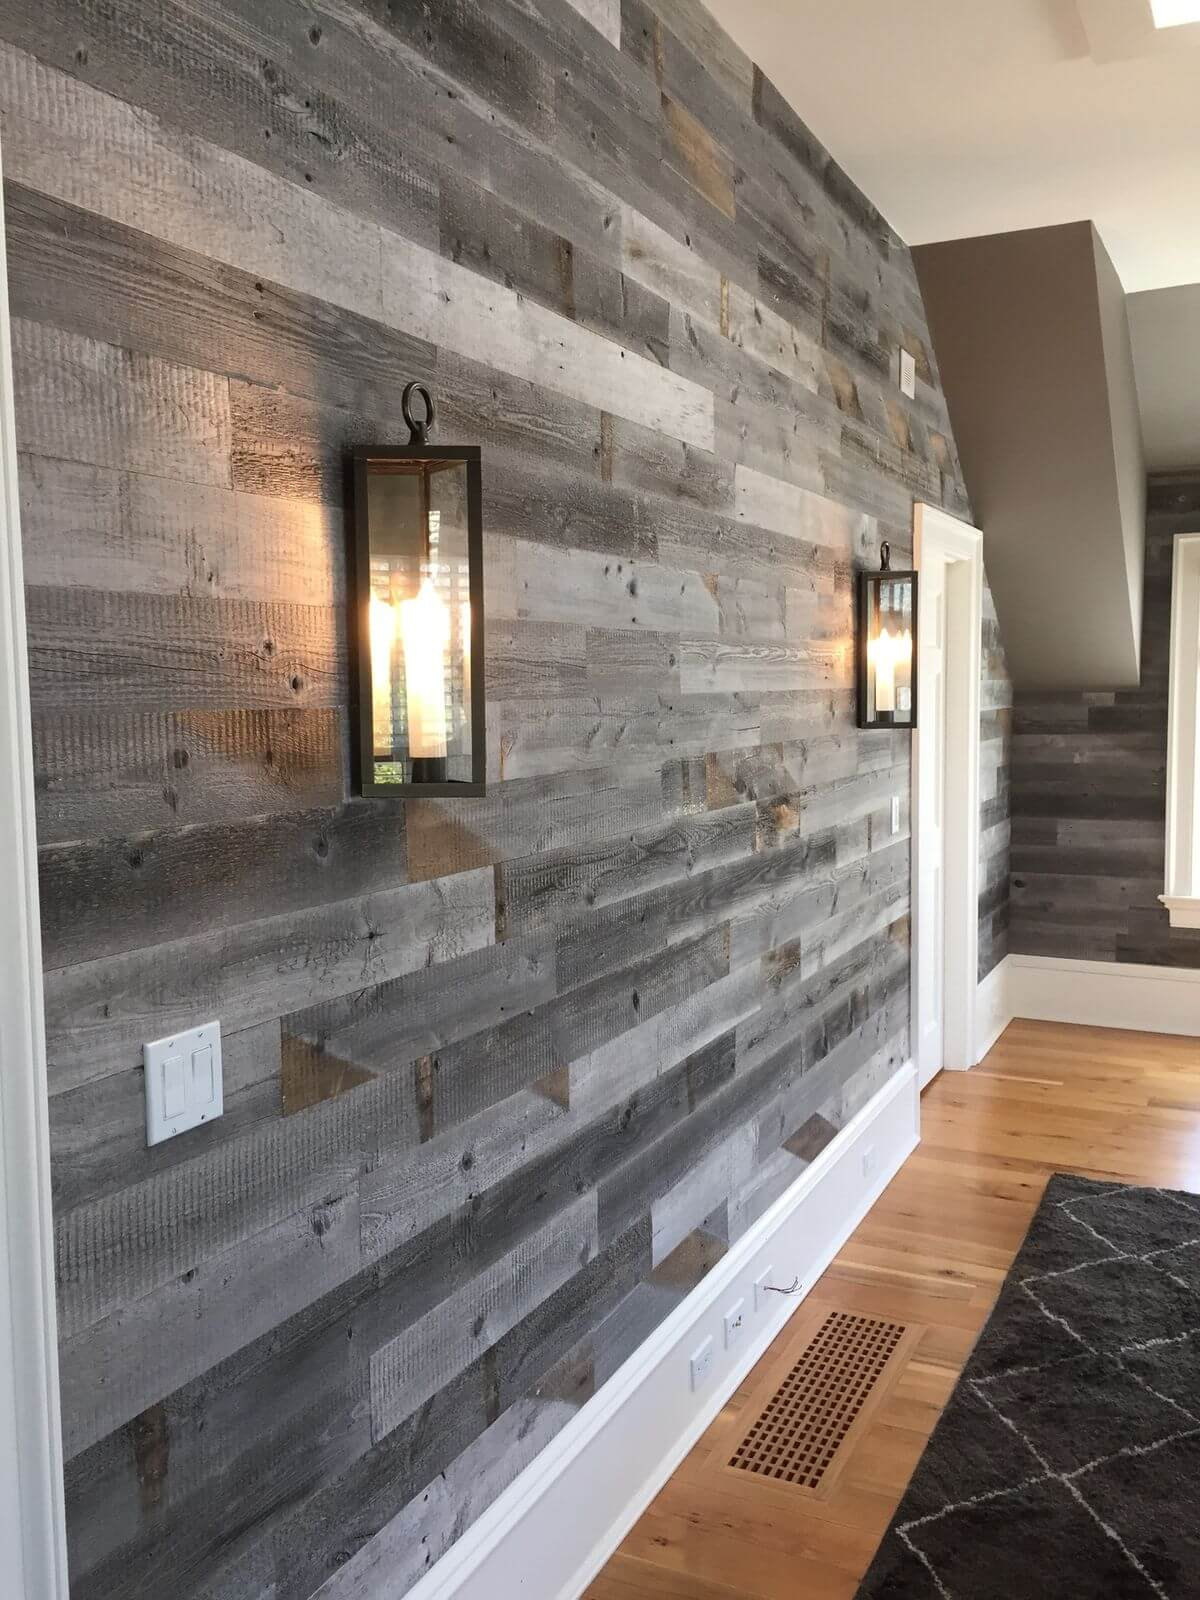 Wood Paneled Room Design: 25 Best Wood Wall Ideas And Designs For 2020